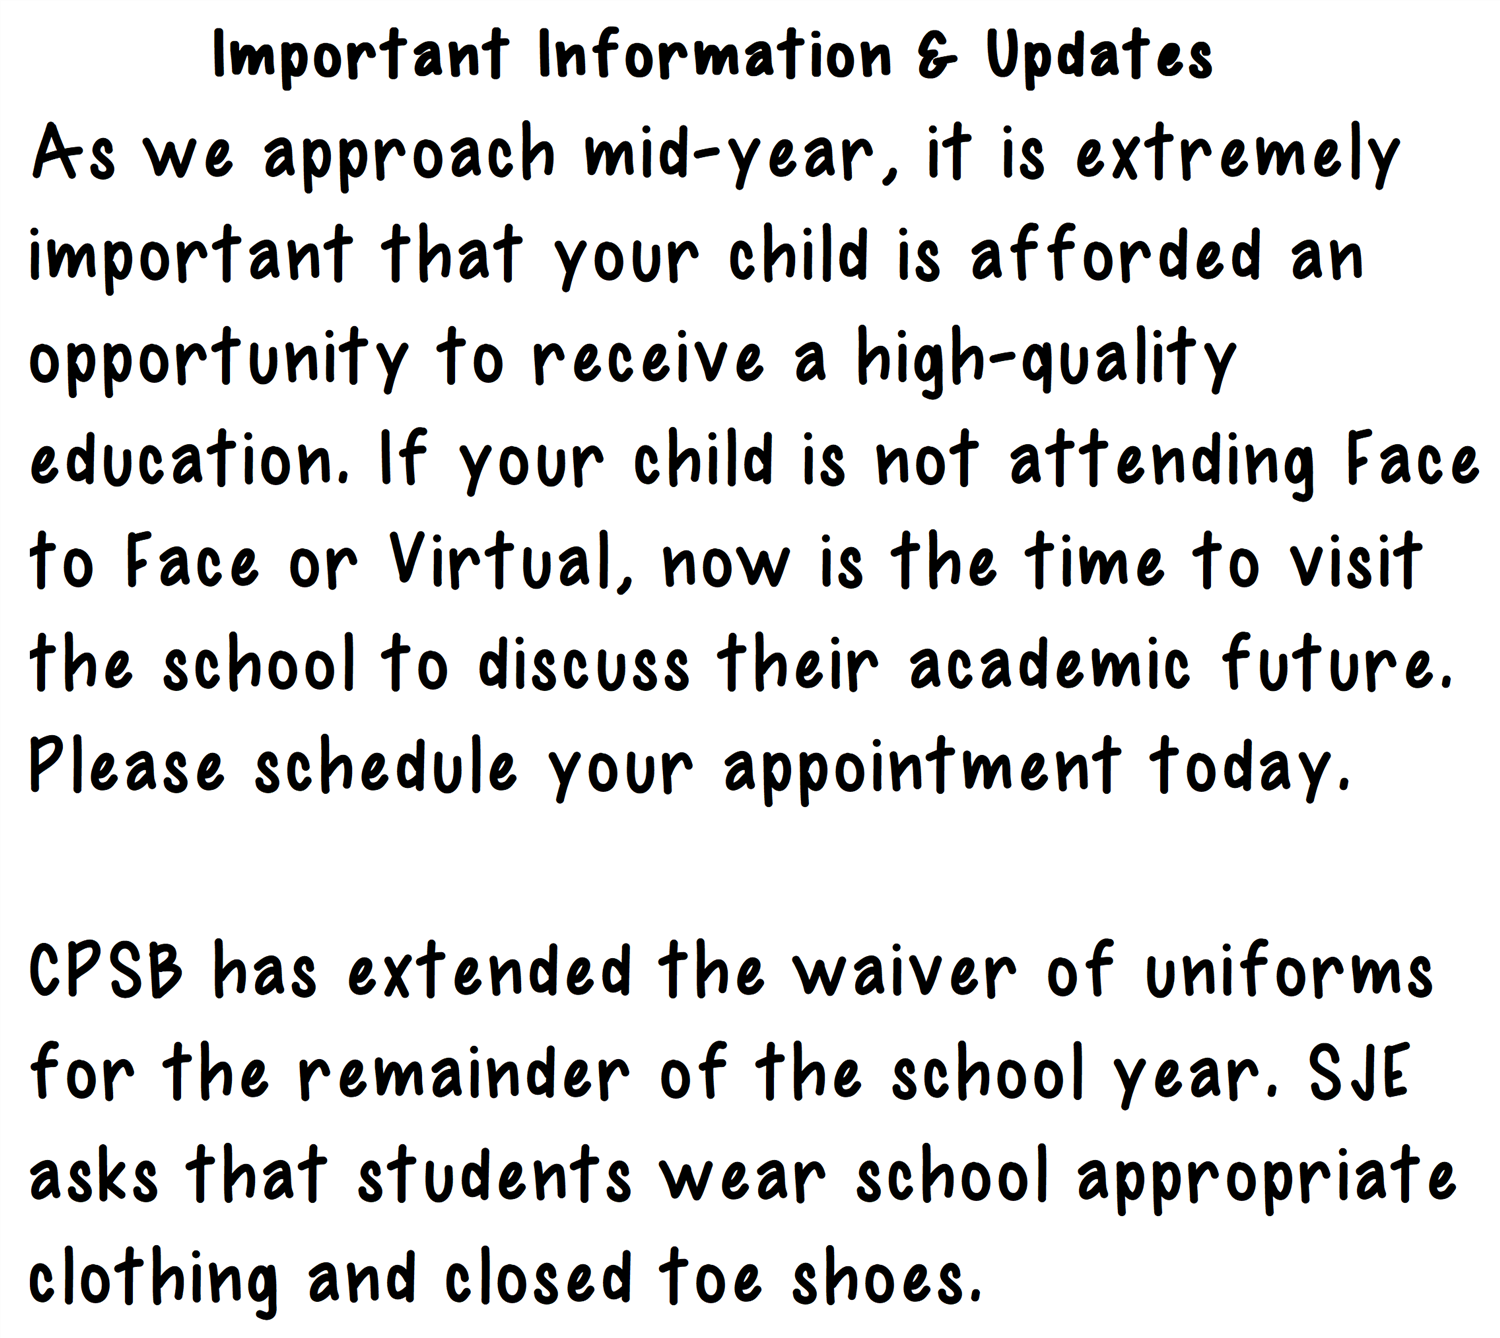 Important Information & Updates